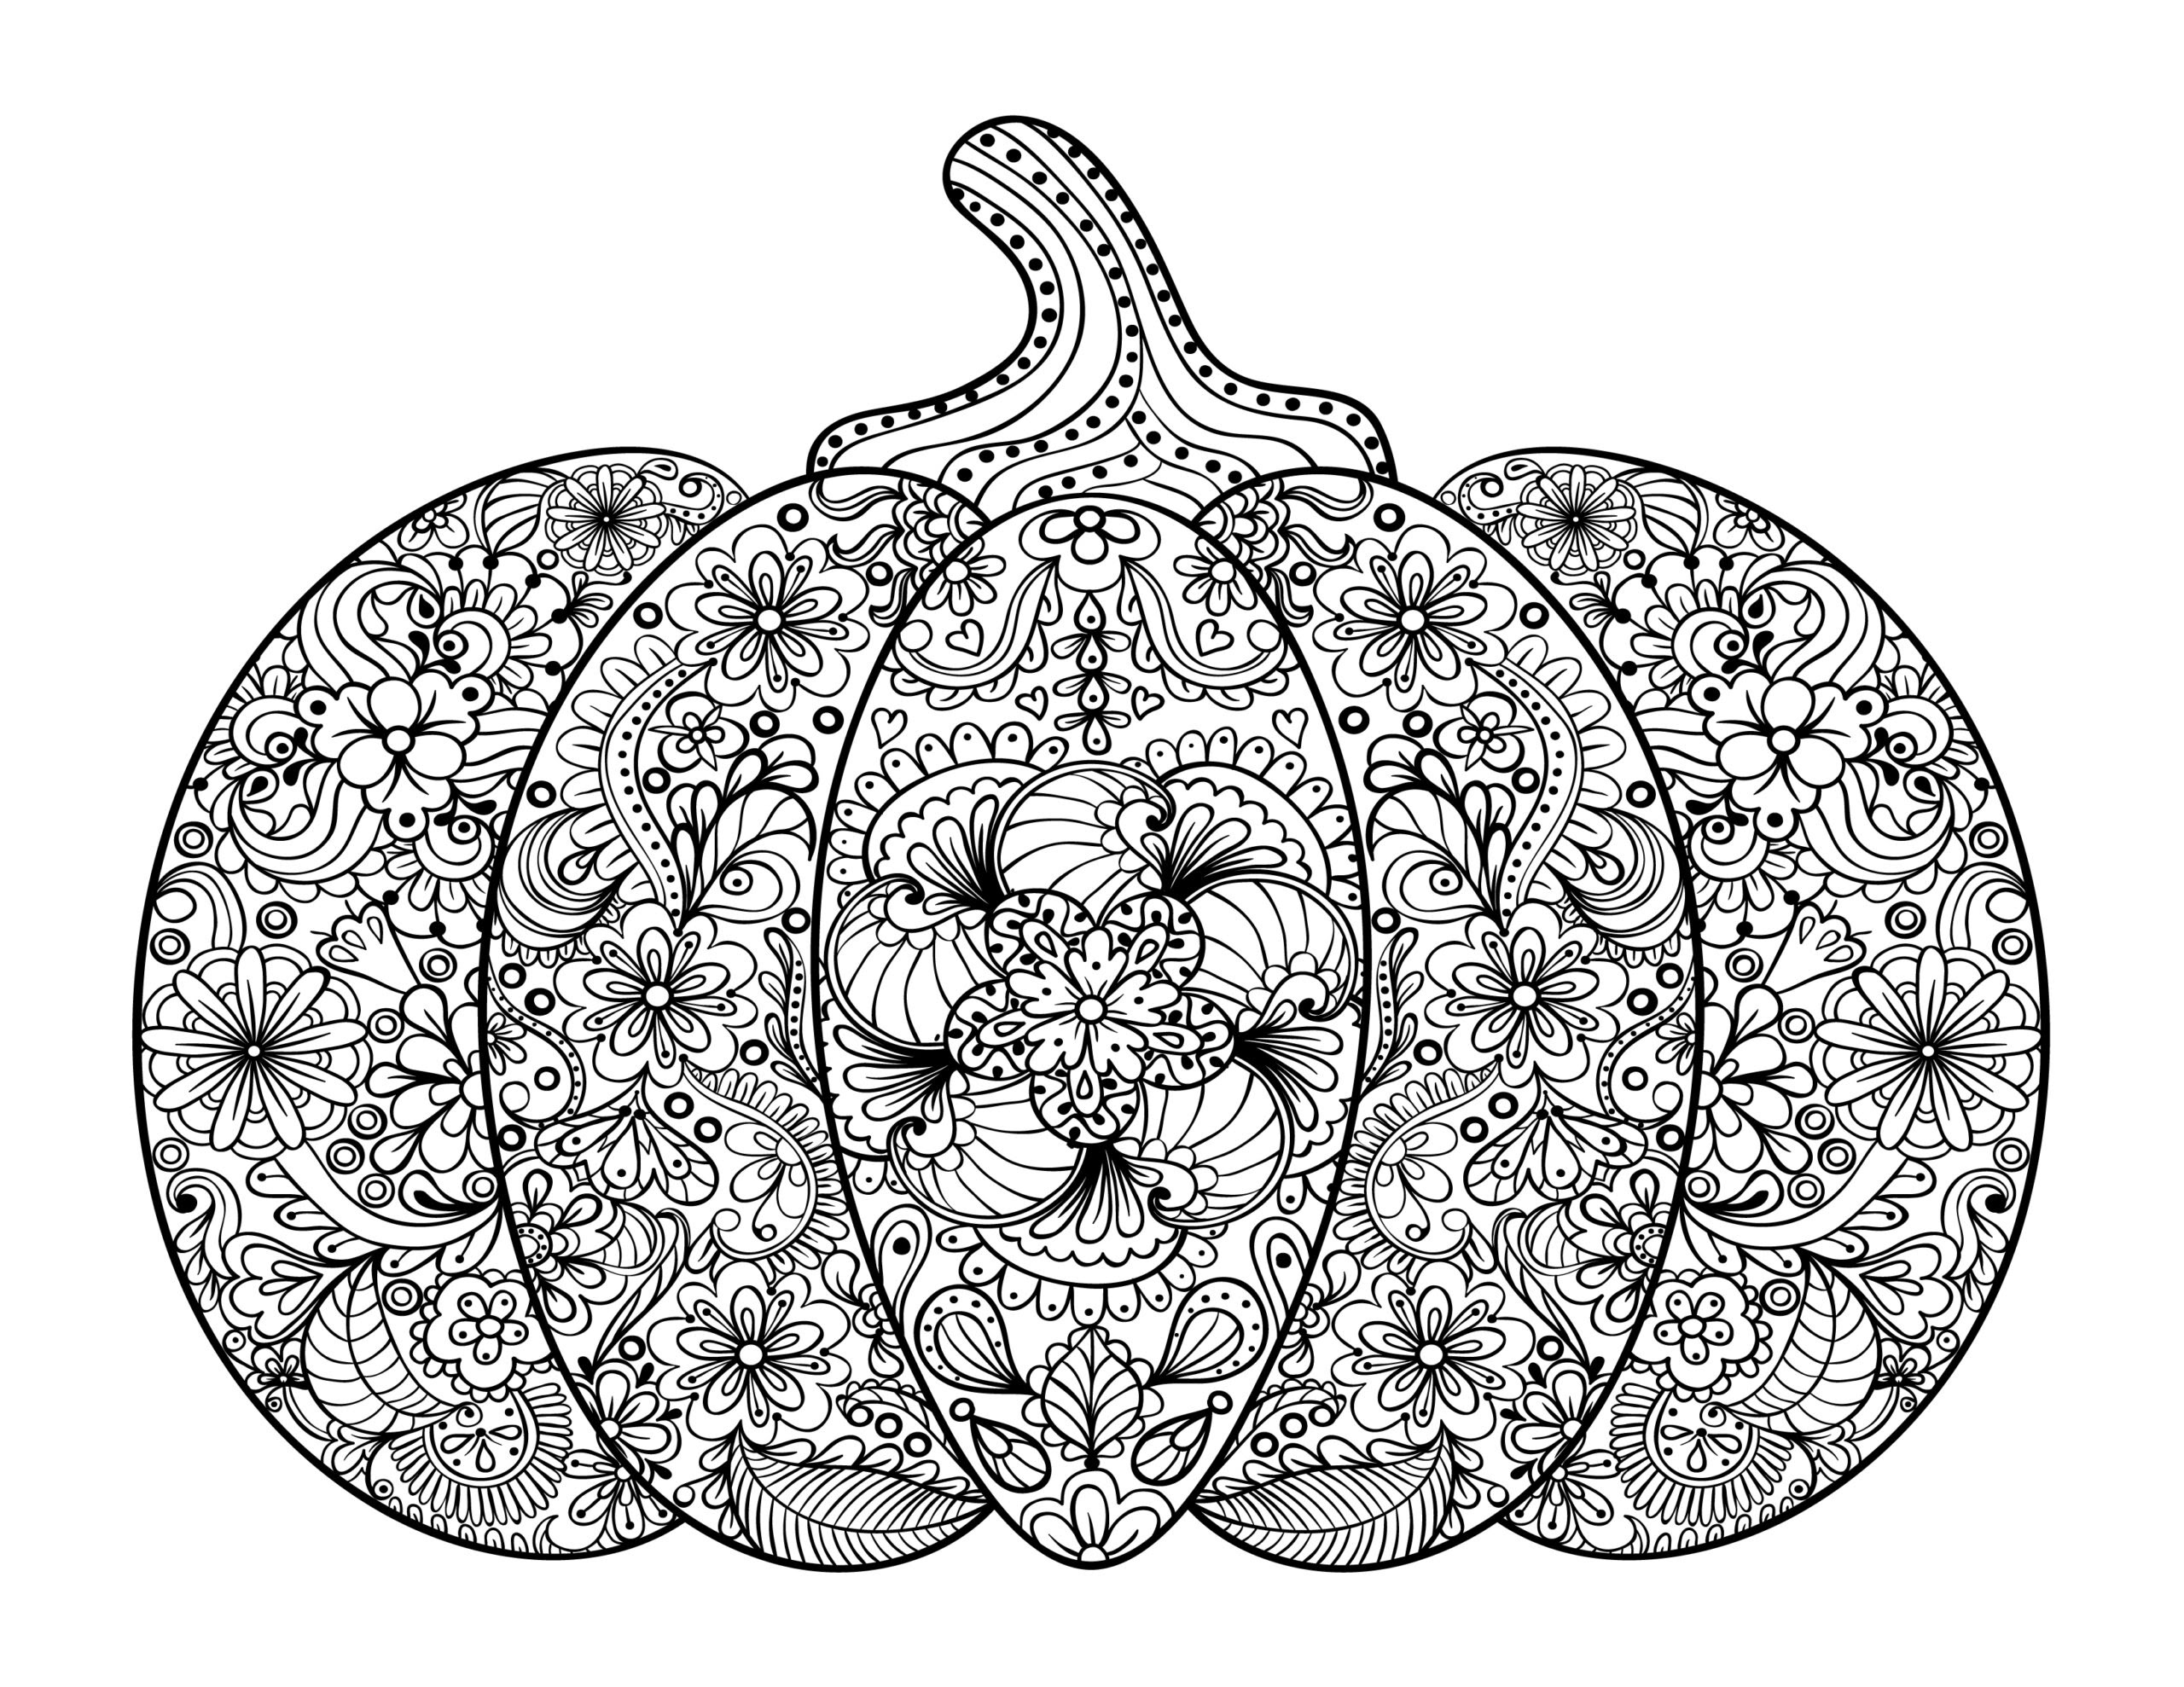 Free Adult Coloring Pages- Pumpkin Delight! - Free Pretty ...